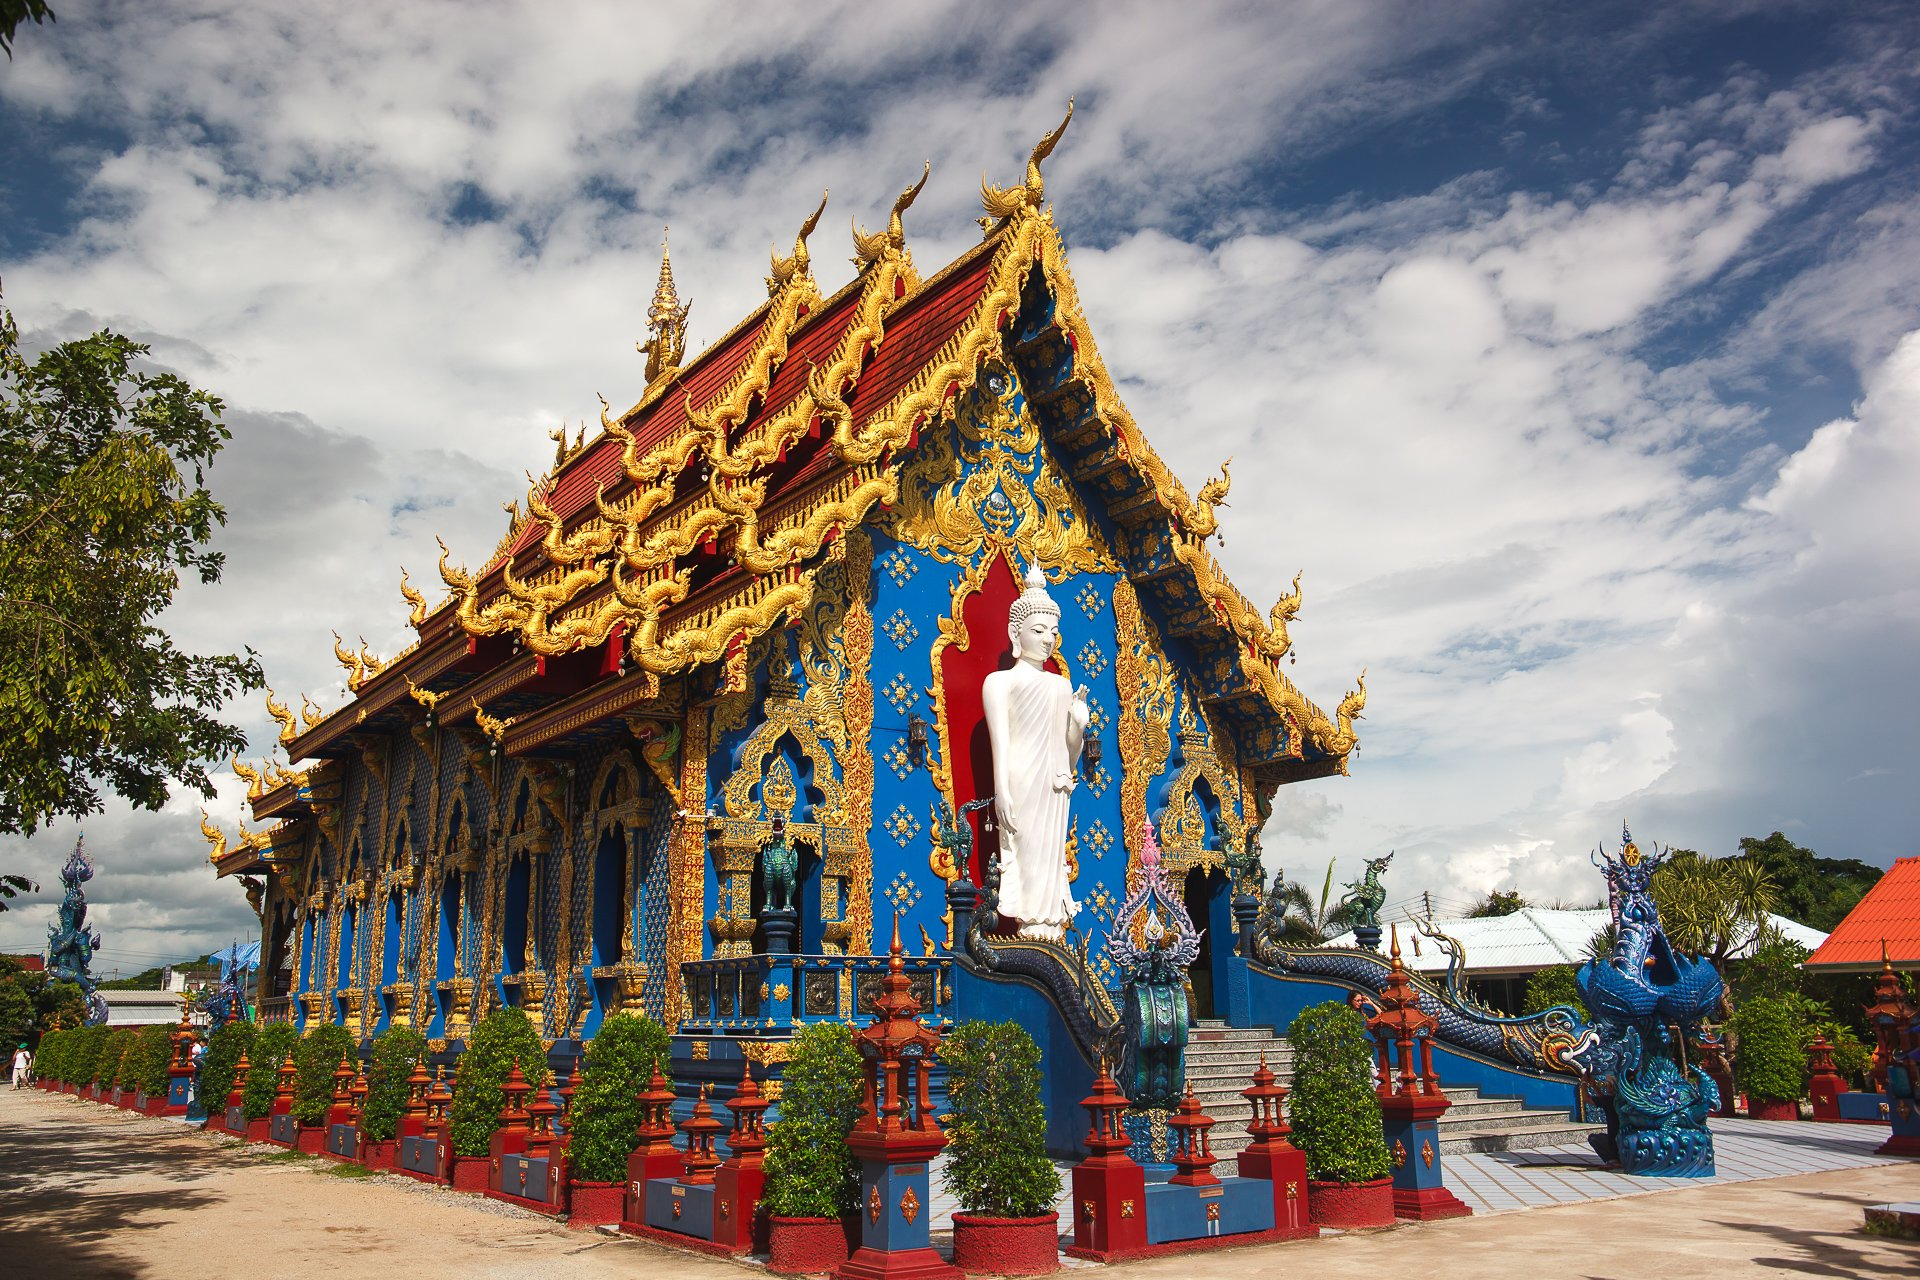 Rong Suea Ten Temple, Chiang Rai, Blue temple, Голубой храм, Чианграй, Чианг Рай, Таиланд,